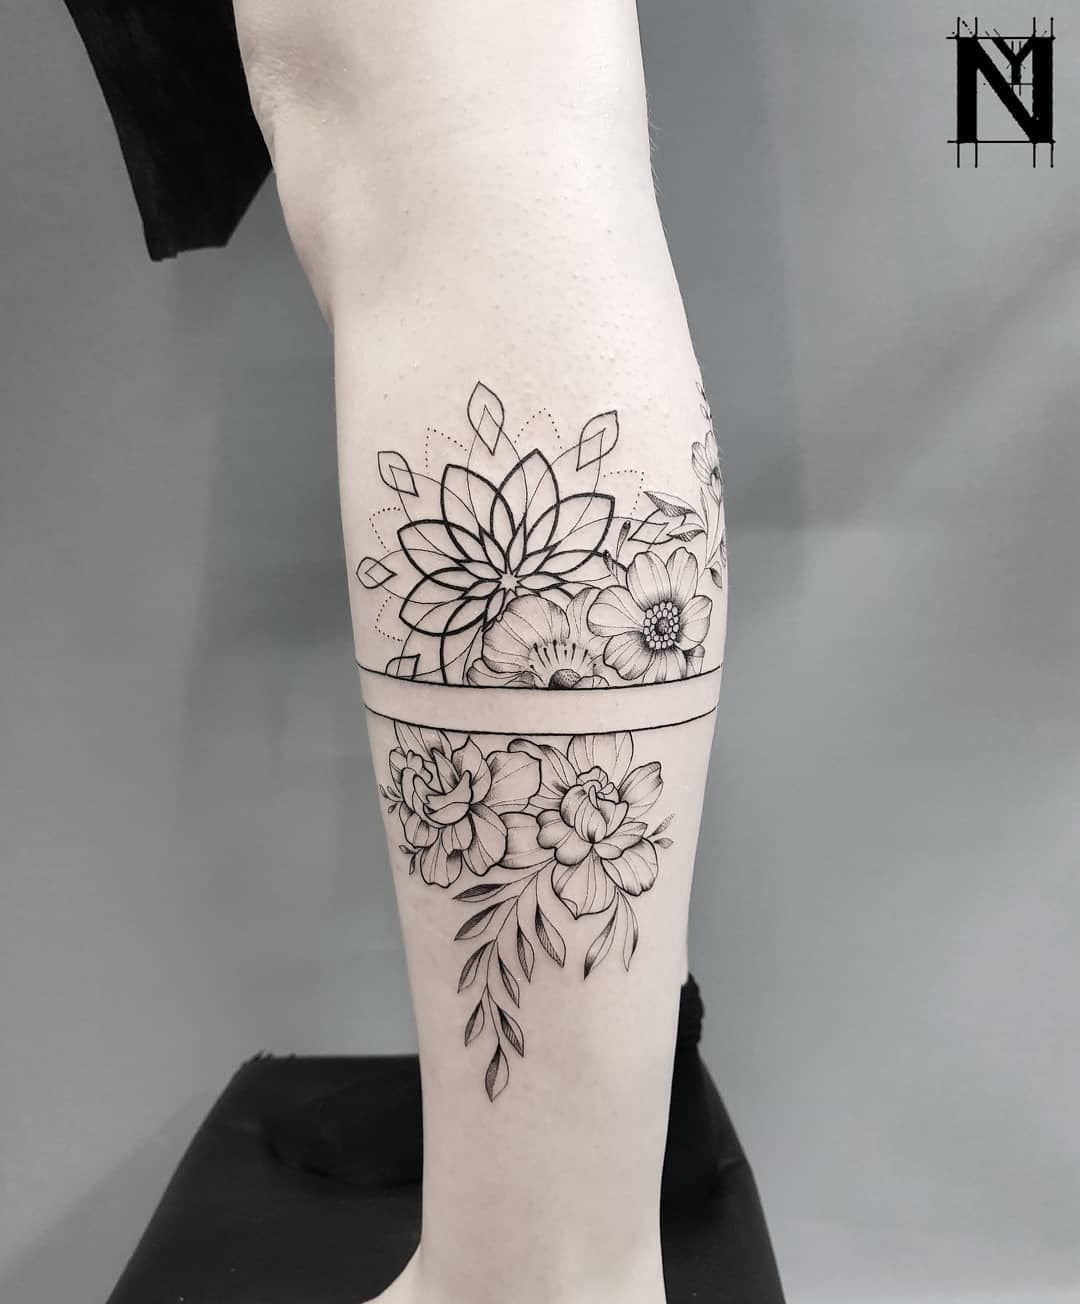 Geometric Flower Tattoo Sleeve: Floral Tattoo, Floral Tattoo Sleeve